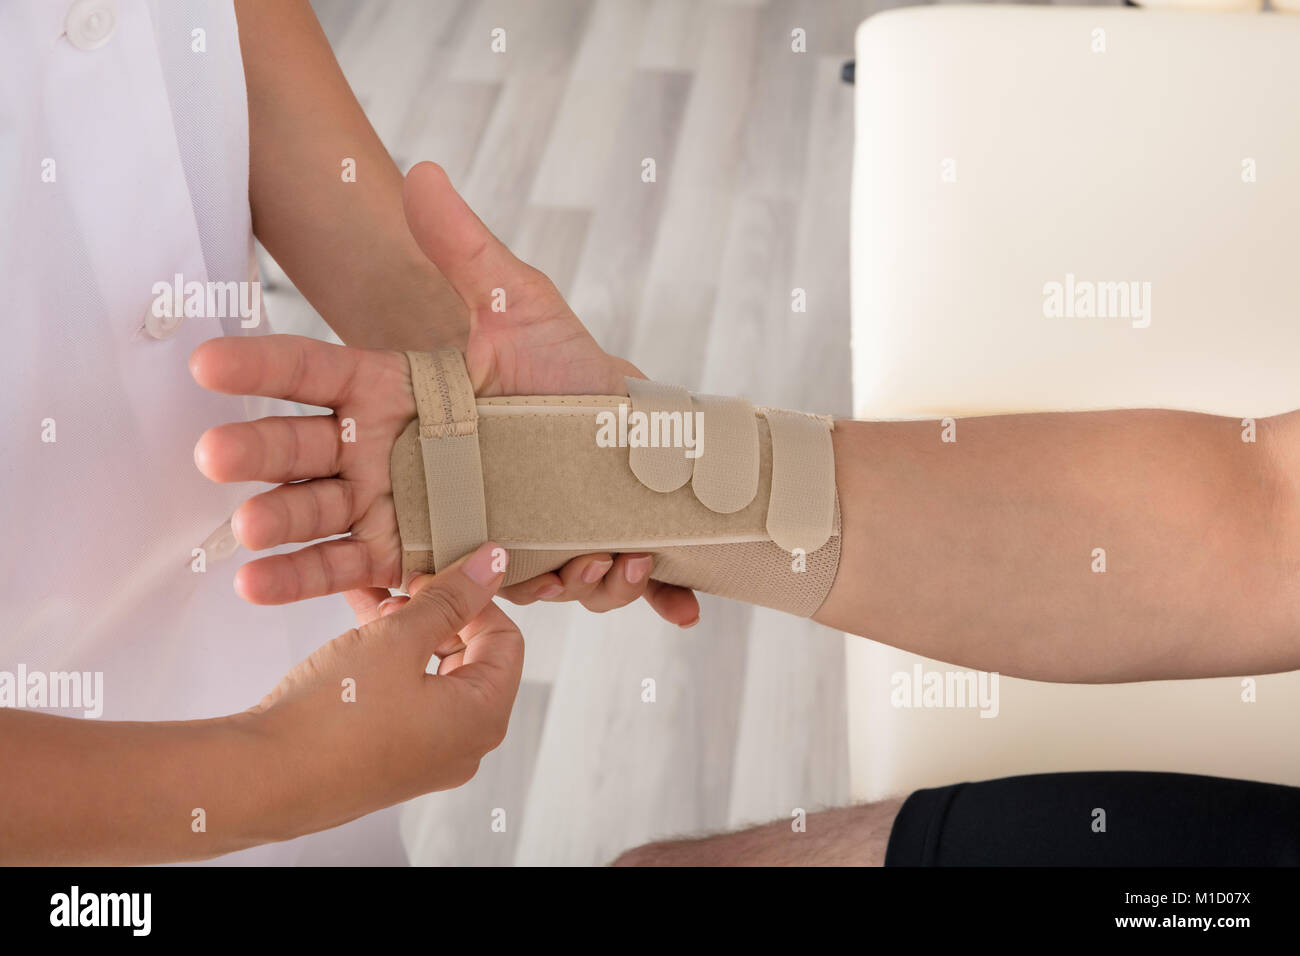 High Angle View Of A Orthopedist Fixing Plaster On Injured Person's Hand In Hospital - Stock Image